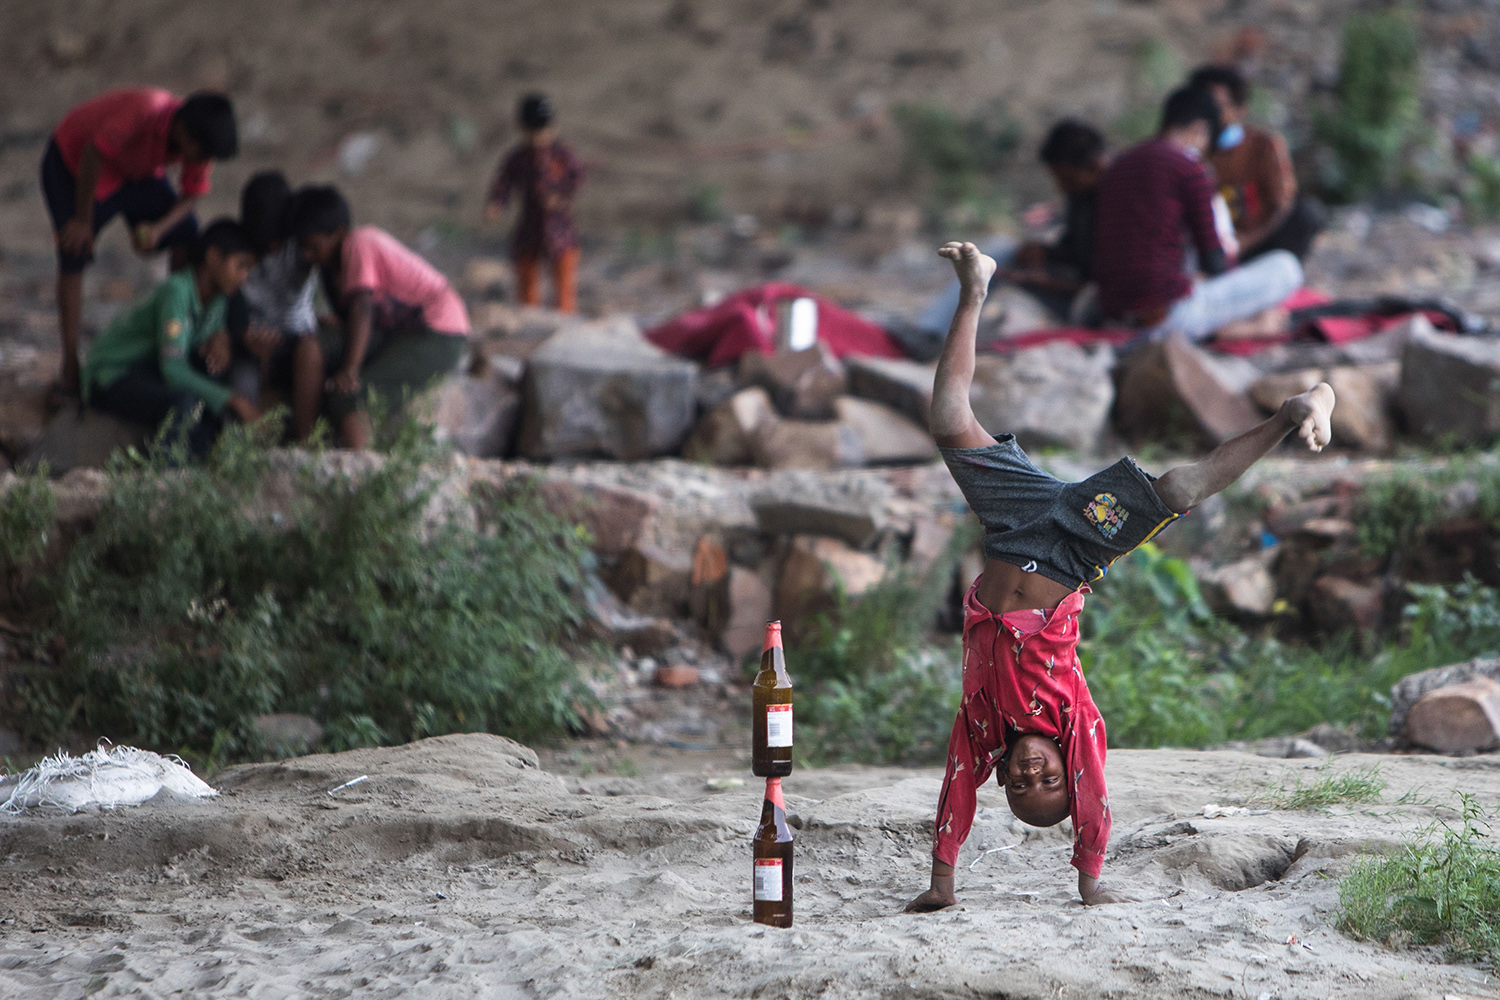 A boy plays under a bridge along the banks of the Yamuna River as temperatures rise in New Delhi on June 18. XAVIER GALIANA/AFP via Getty Images